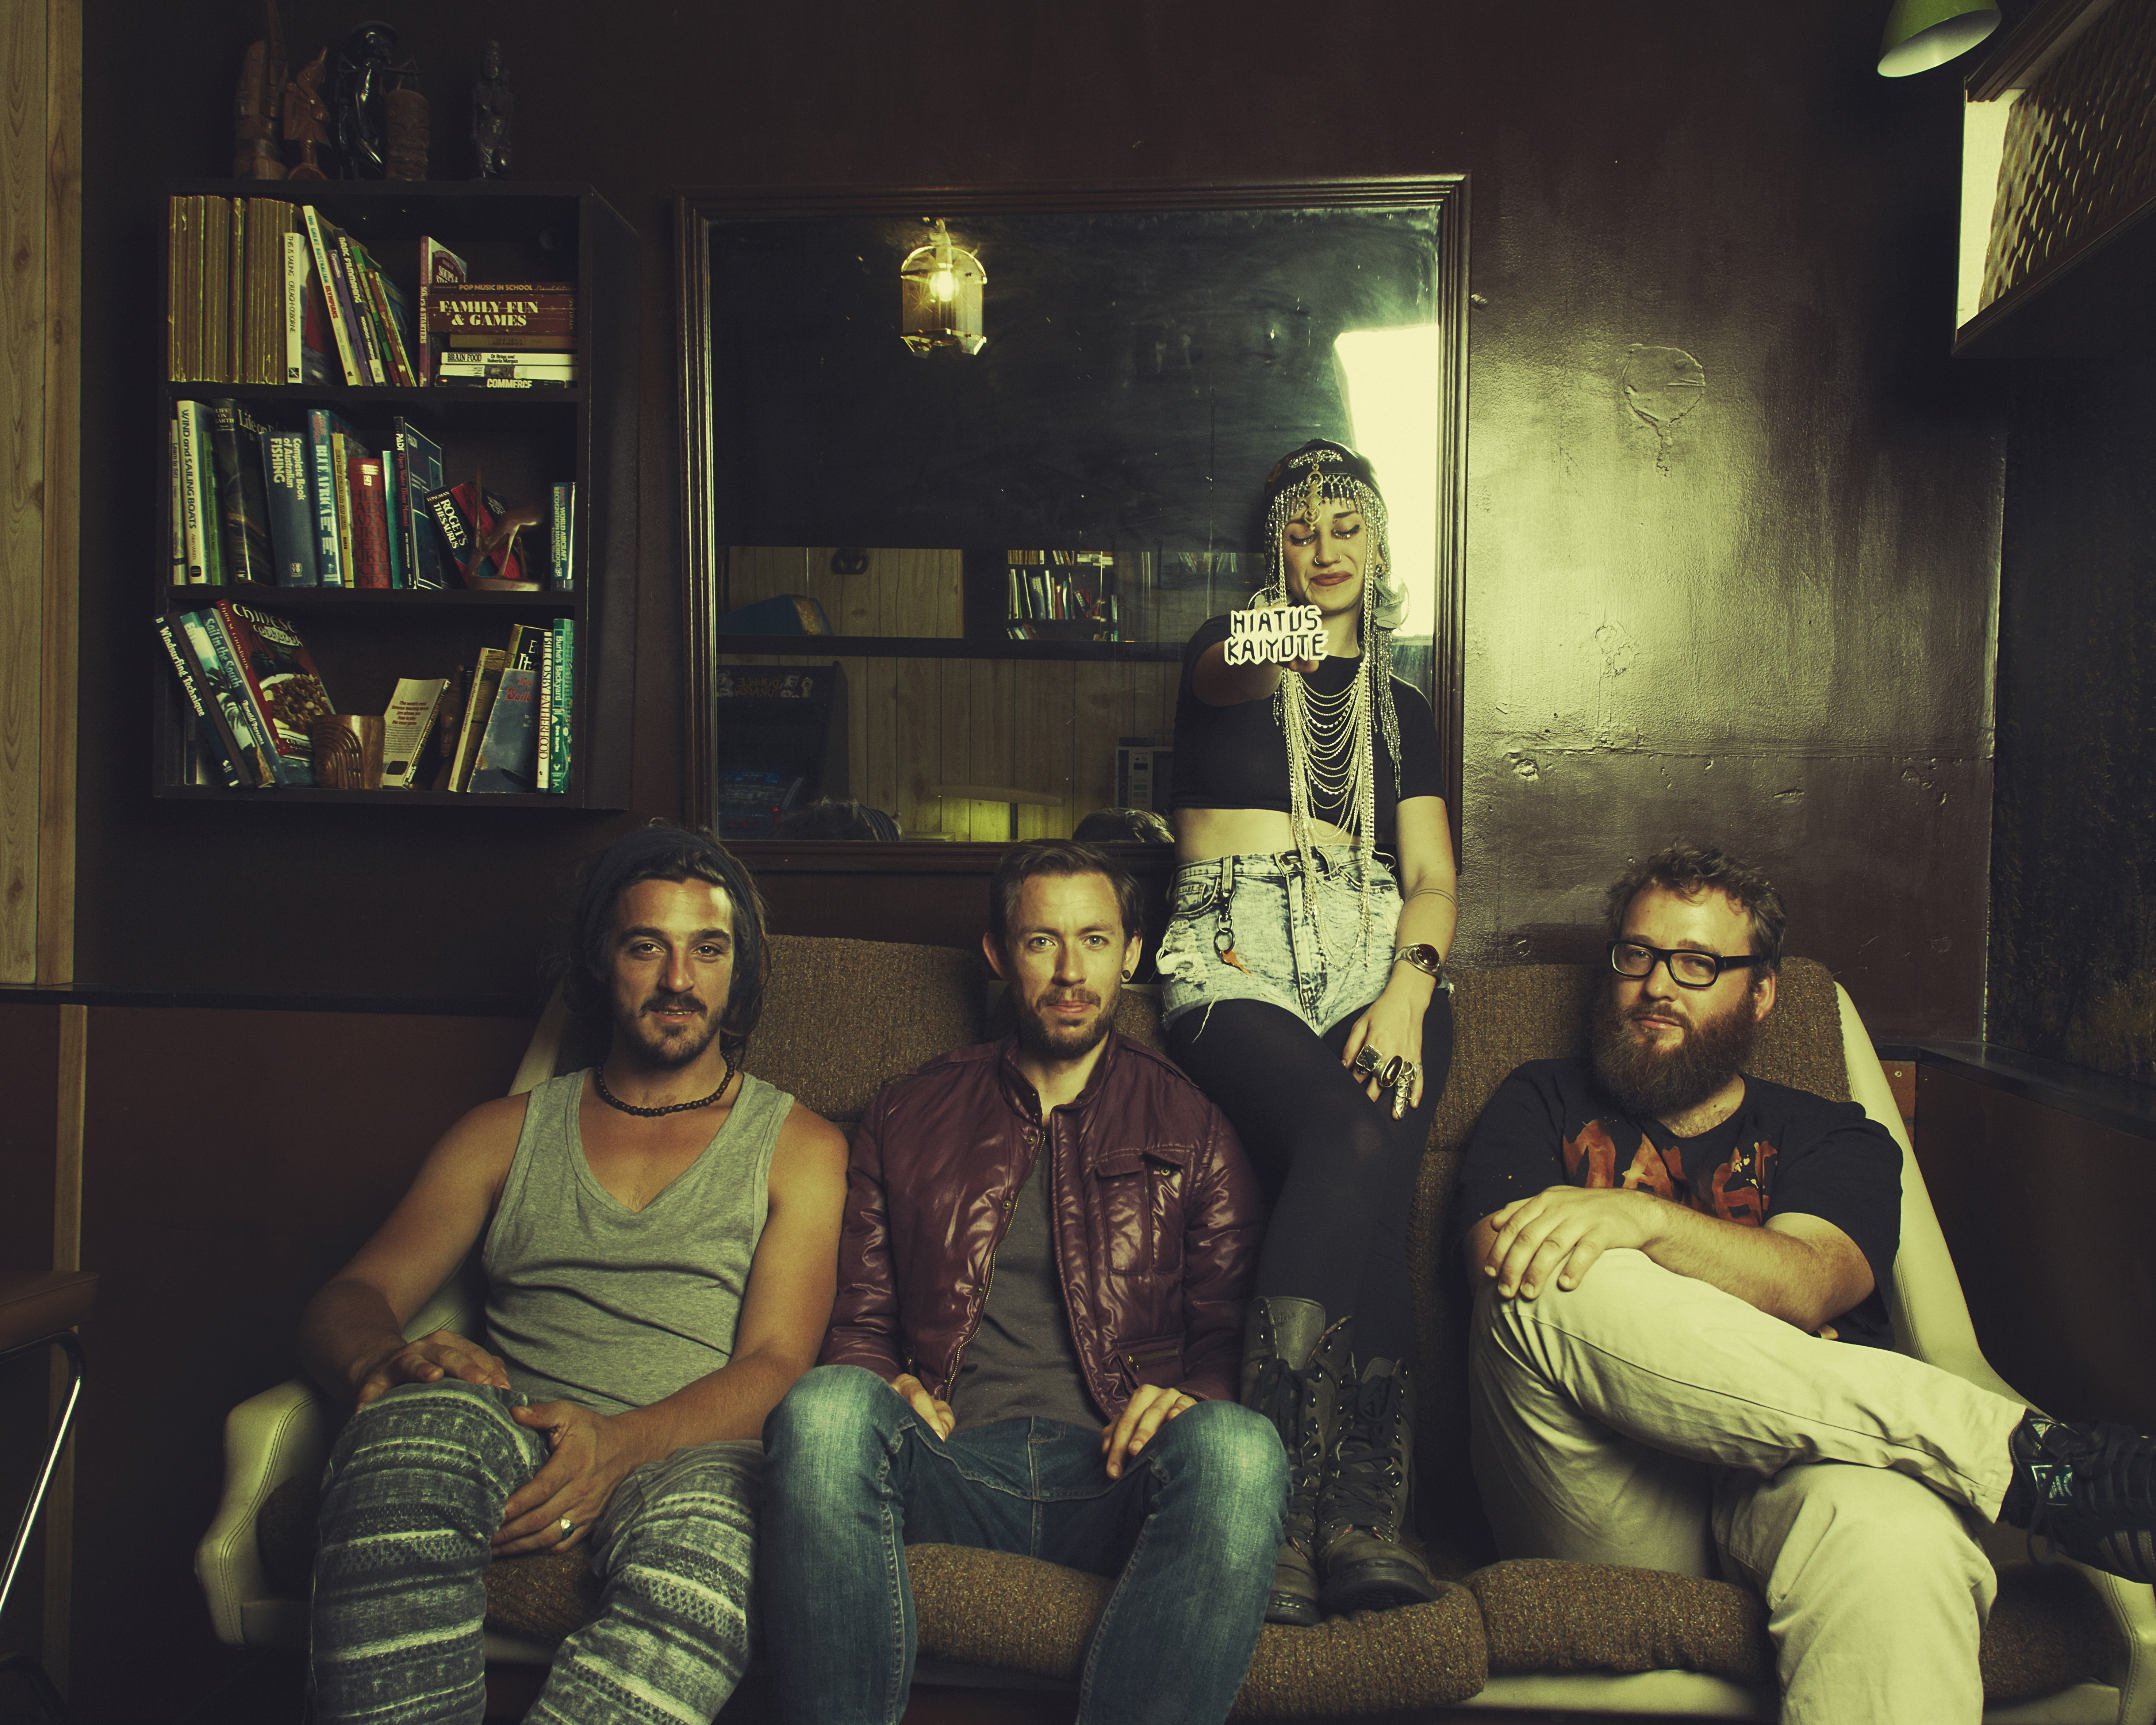 _MG_5914 Hiatus Kaiyote by Wilk